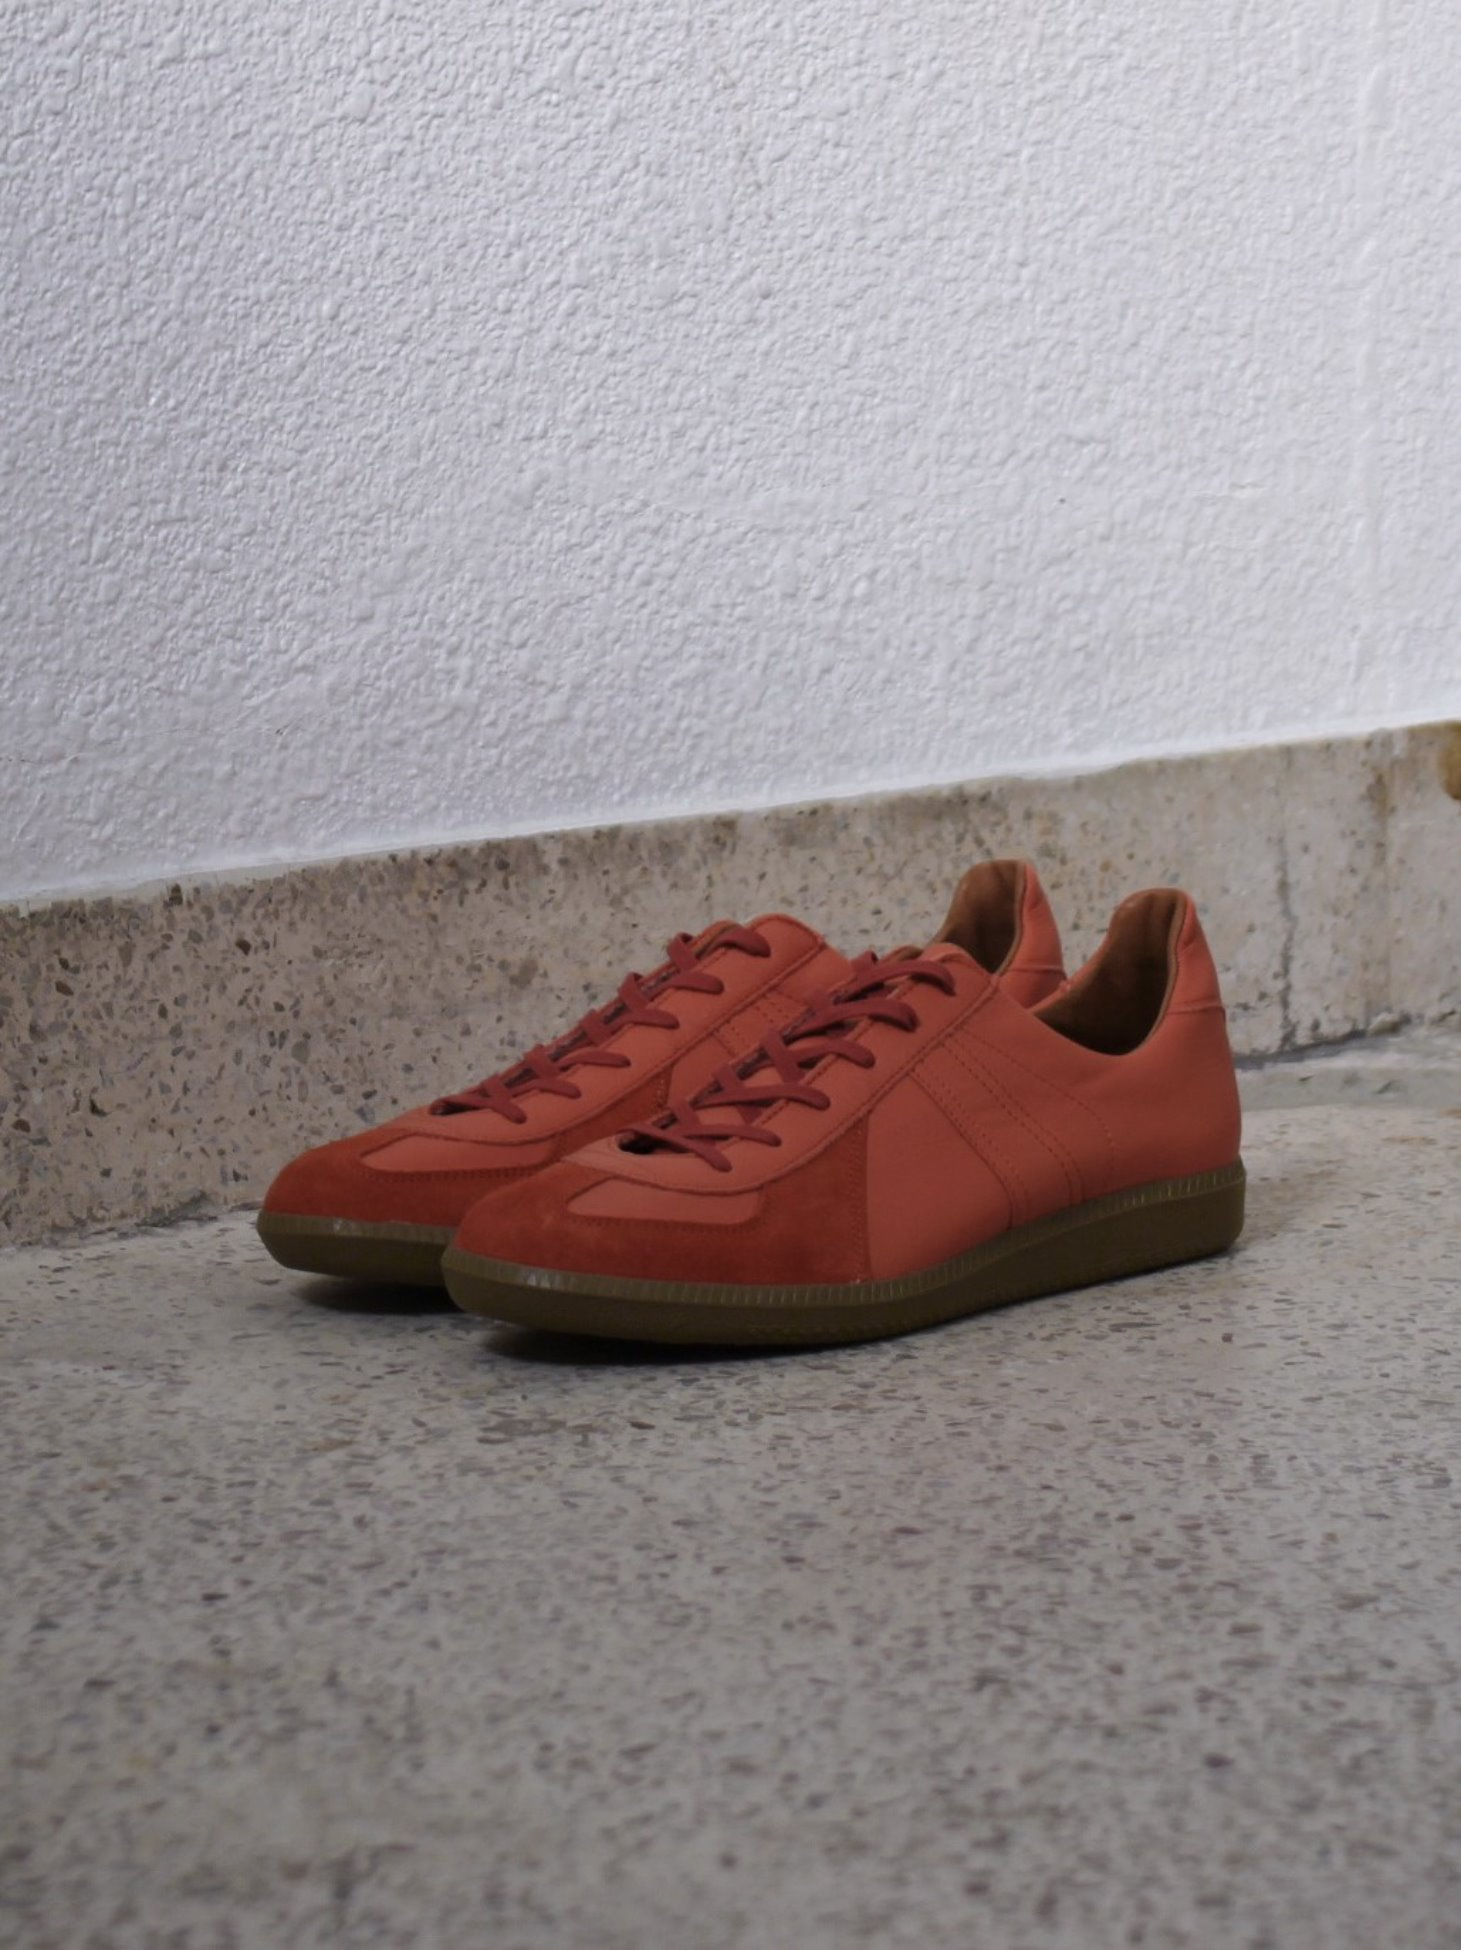 [Reproduction of Found] German Military Trainer 1700L - Coral